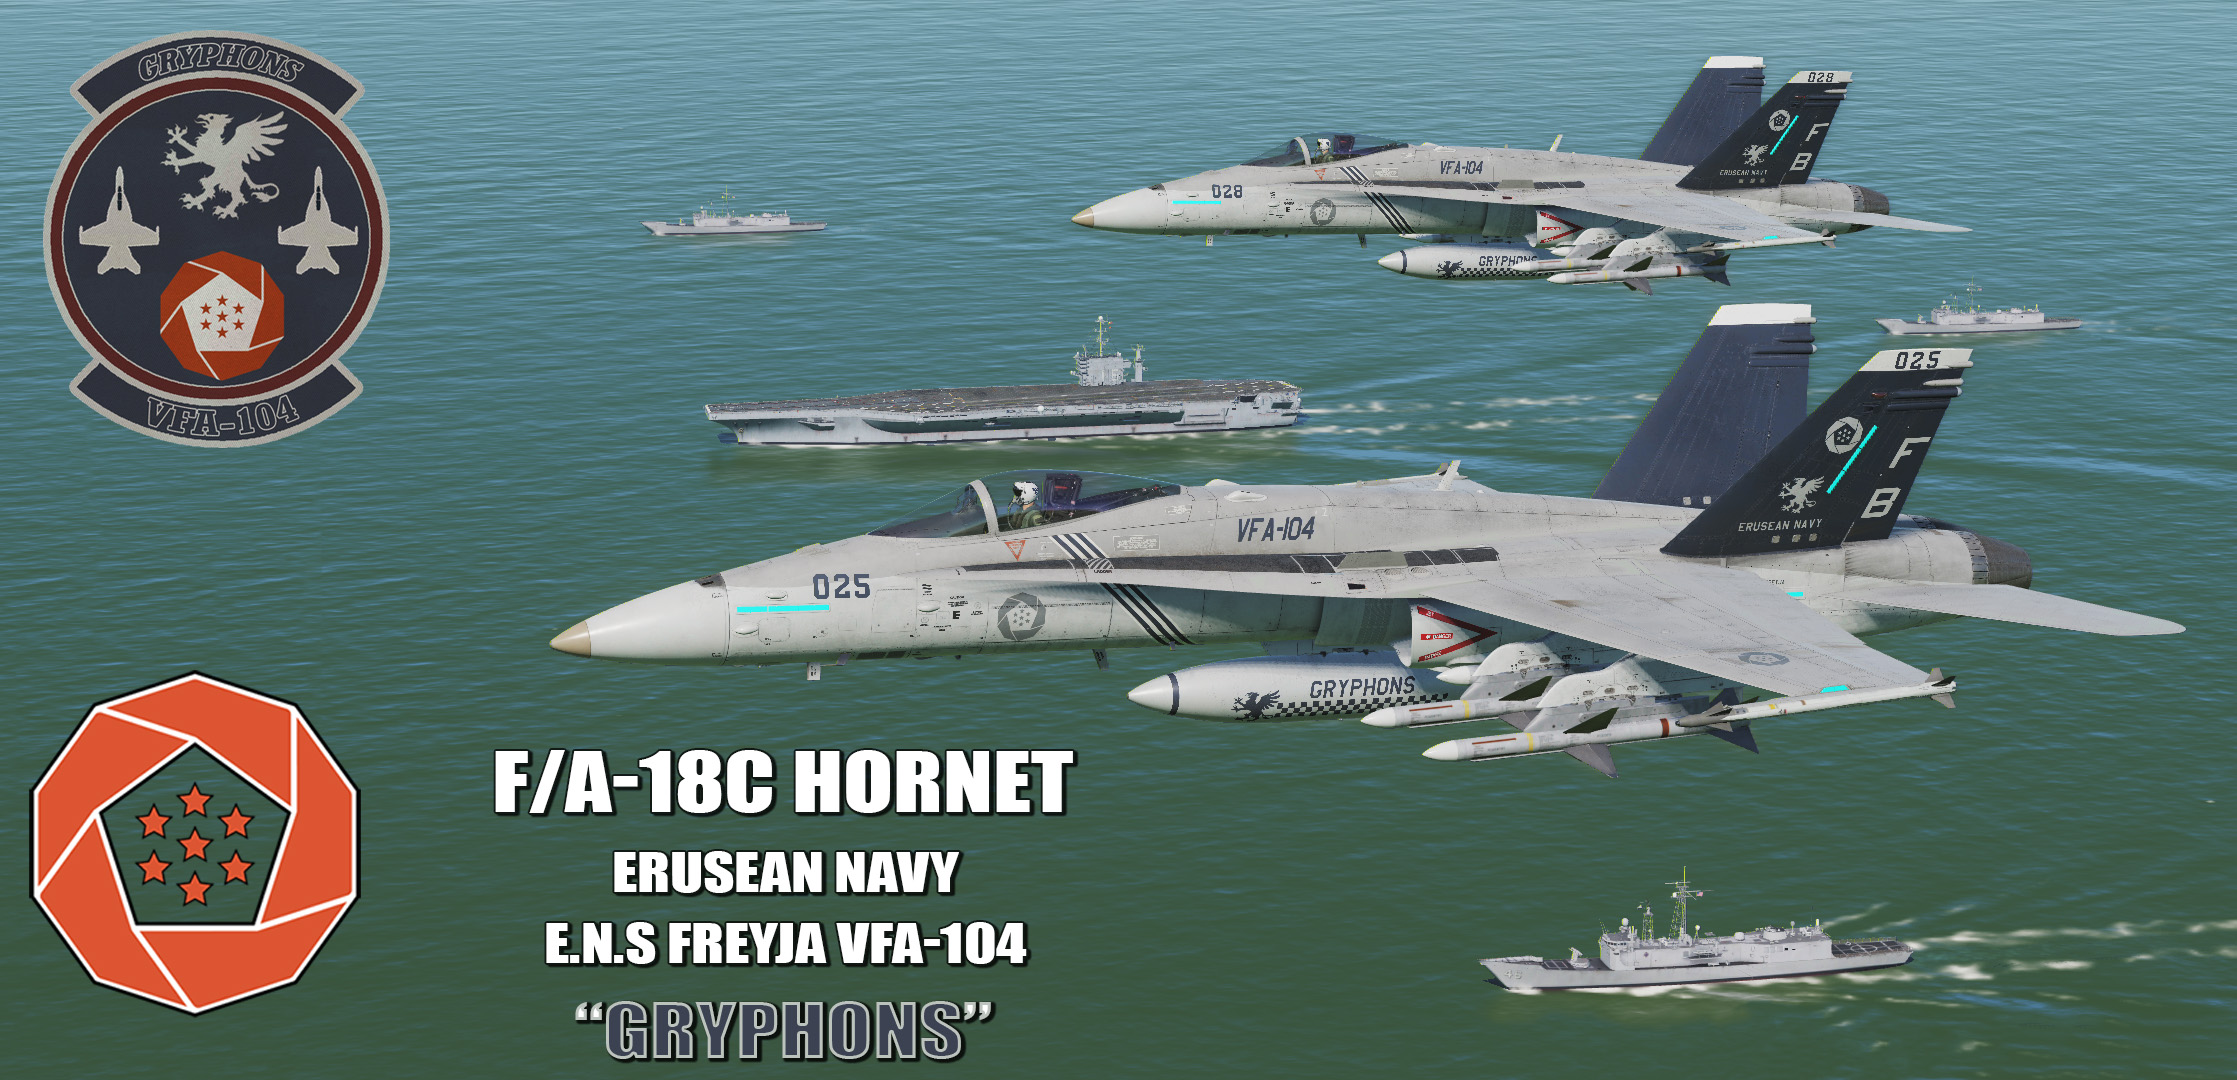 "Ace Combat - Erusean Navy VFA-104 ""Gryphons"" F/A-18C Hornet"